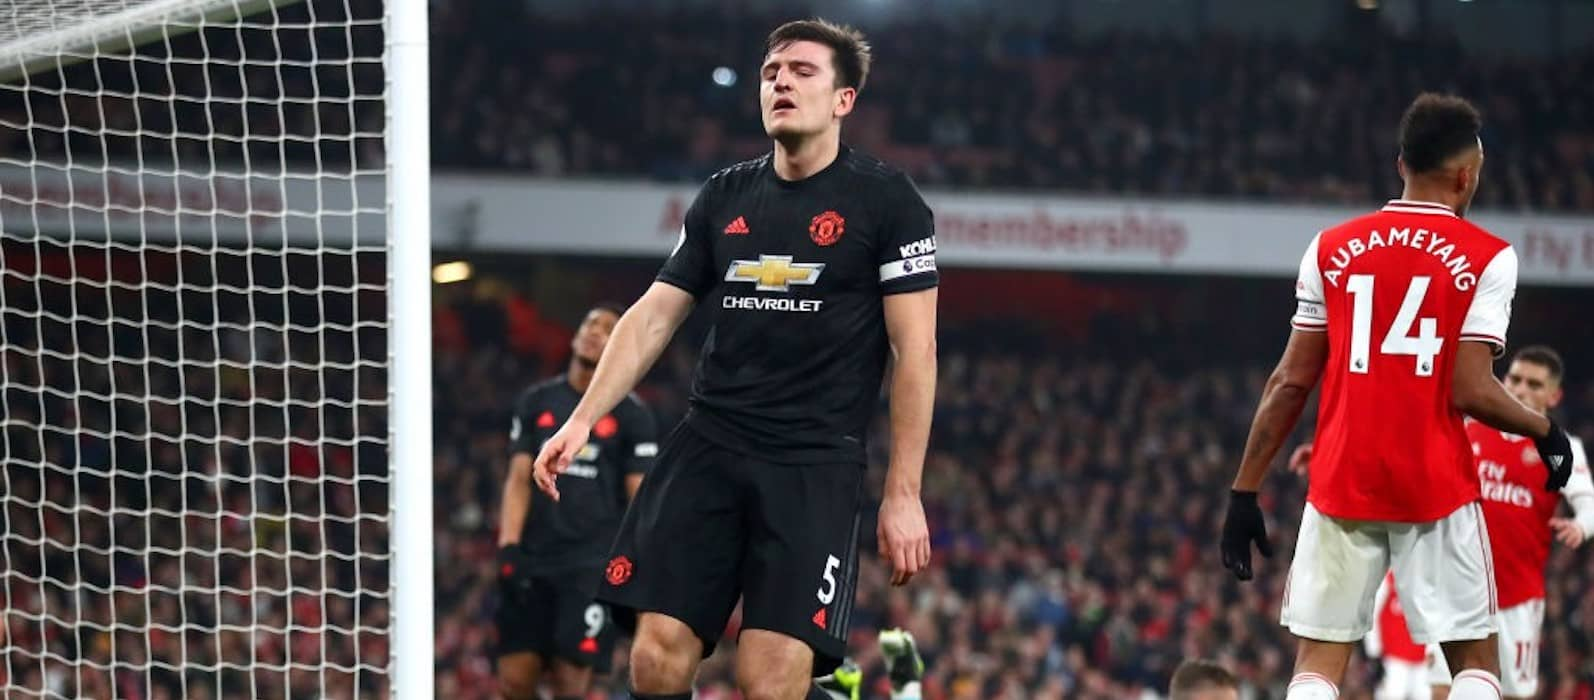 Manchester United fans look to the future with Harry Maguire captaincy